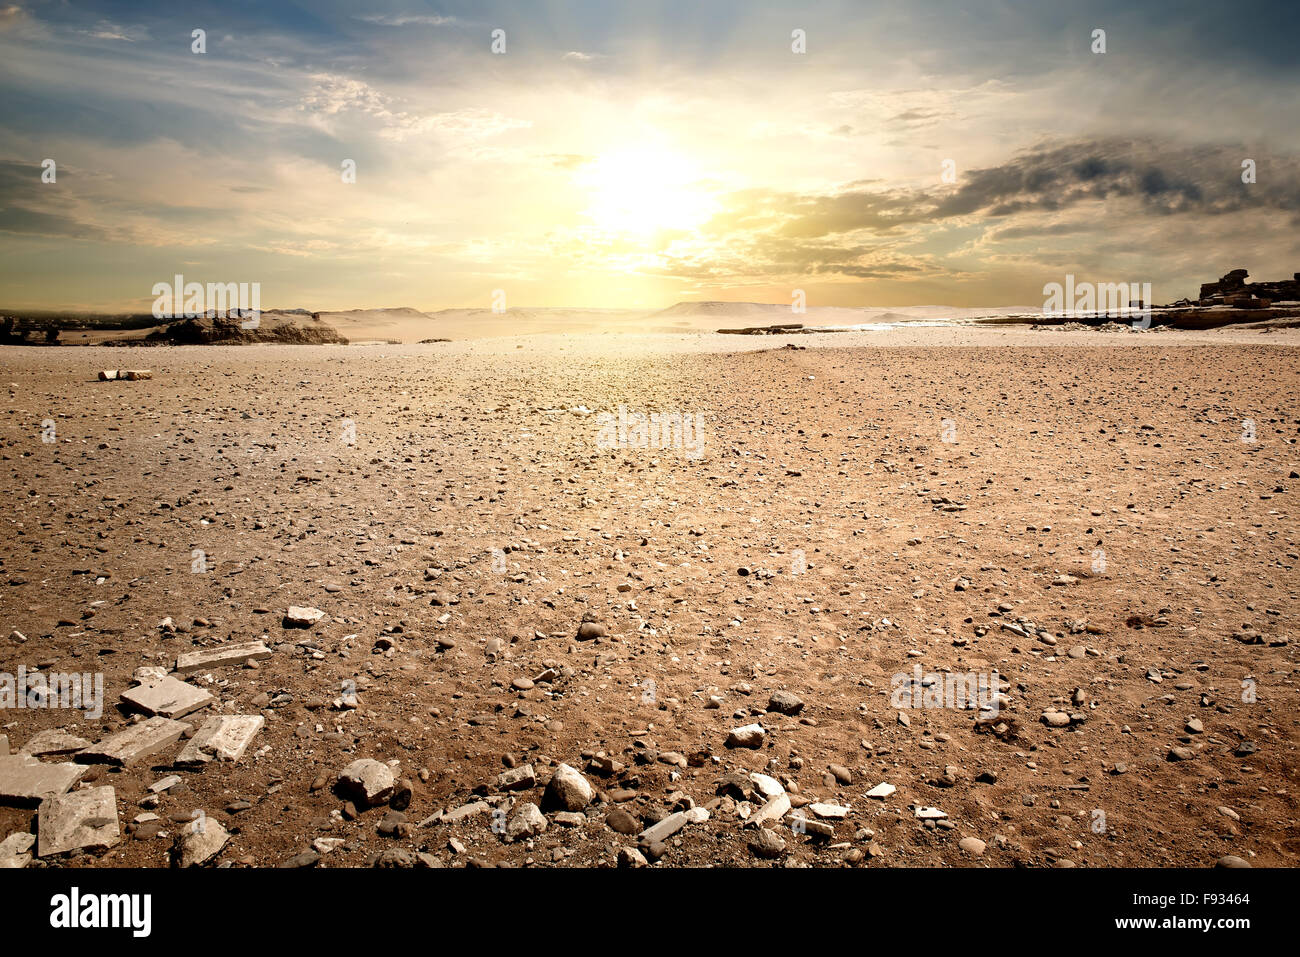 Cloudy sky in stony desert of Egypt - Stock Image